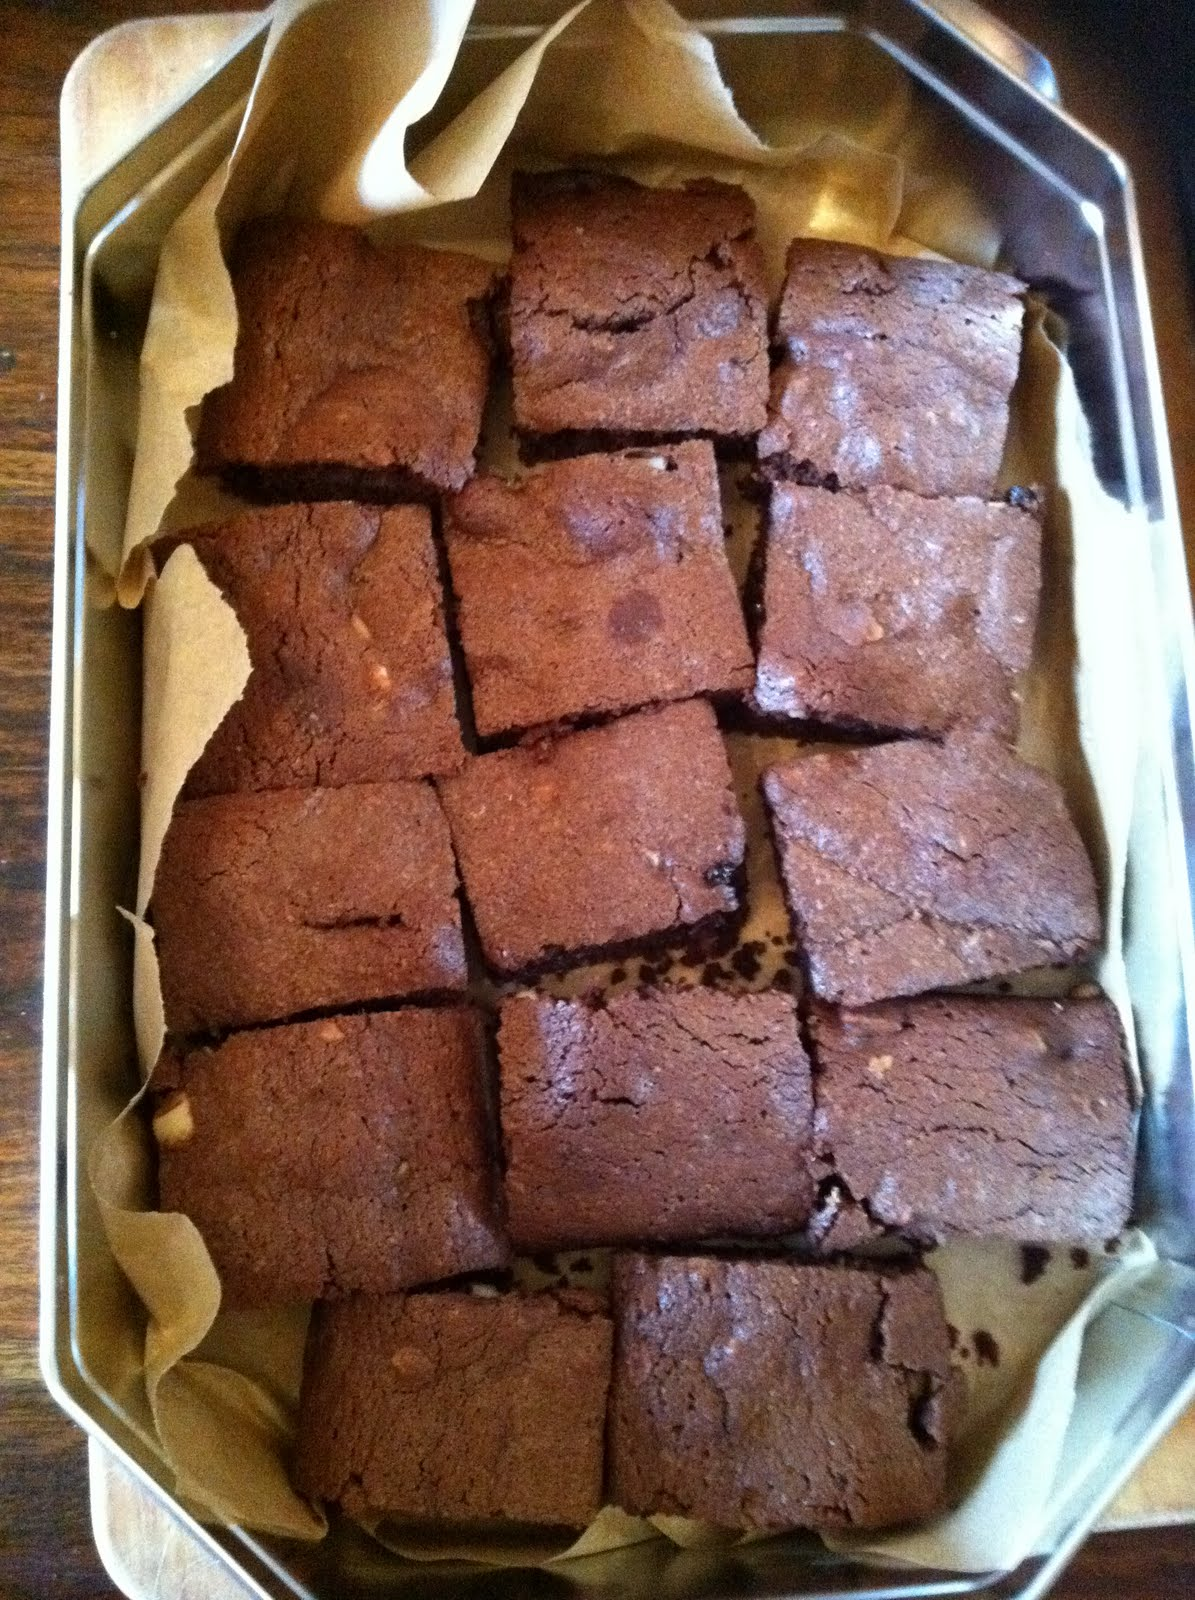 Mix it Cook it: Chocolate Orange Brownies With Macadamia Nuts